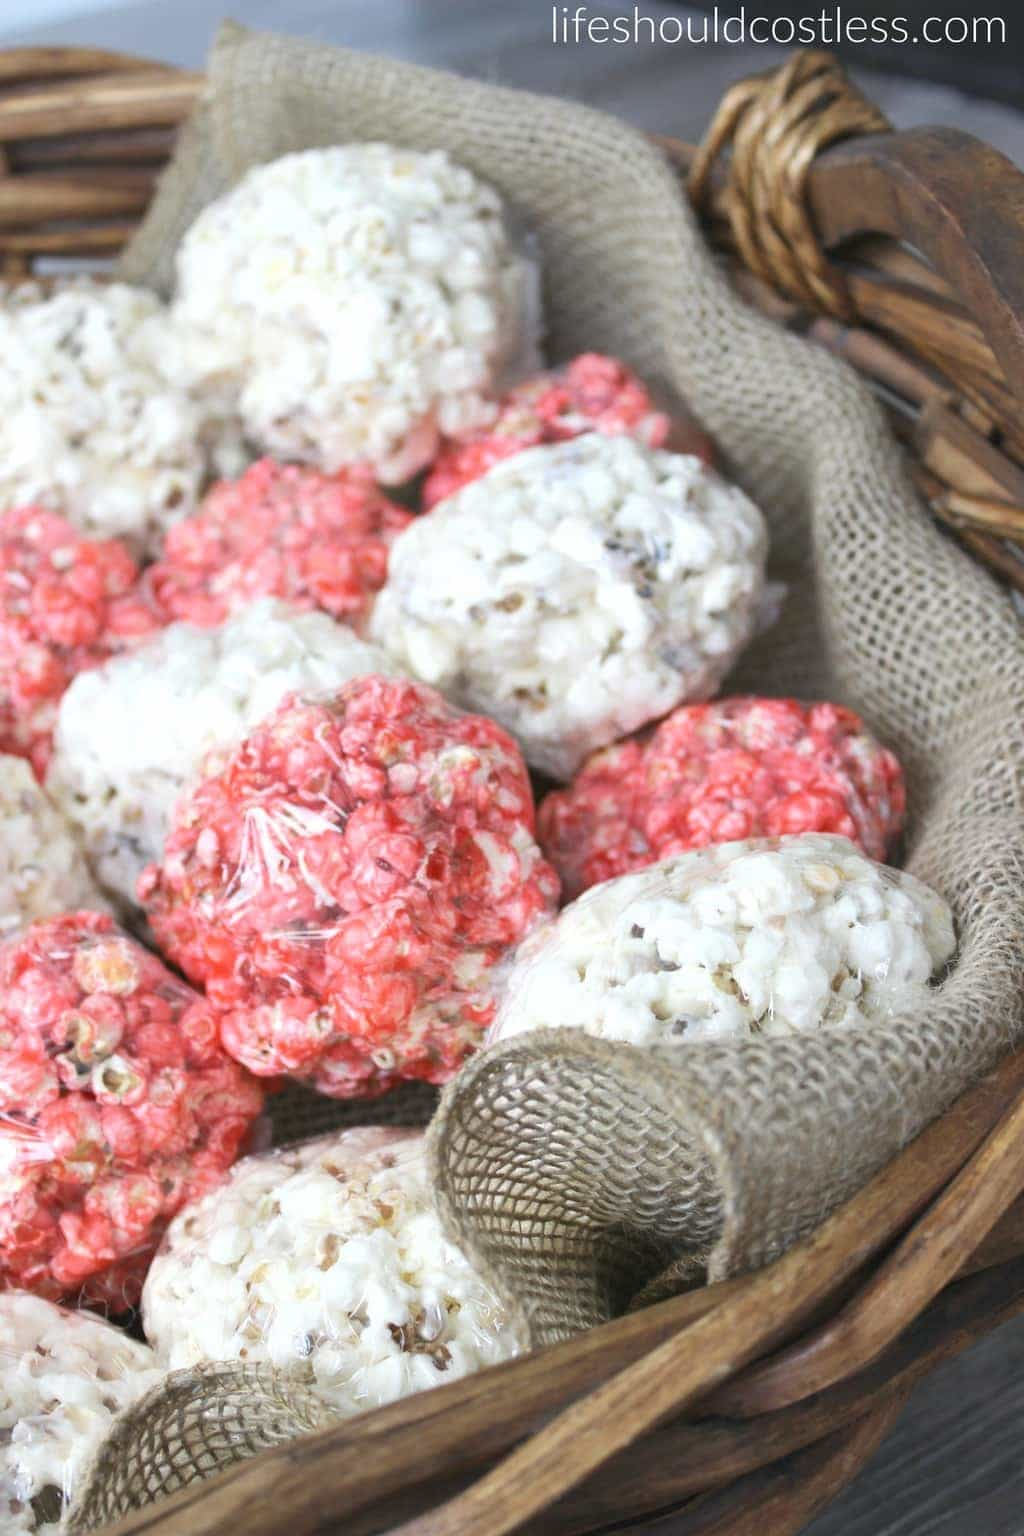 Red white and blue popcorn balls in cute large basket with burlap liner. {lifeshouldcostless.com}